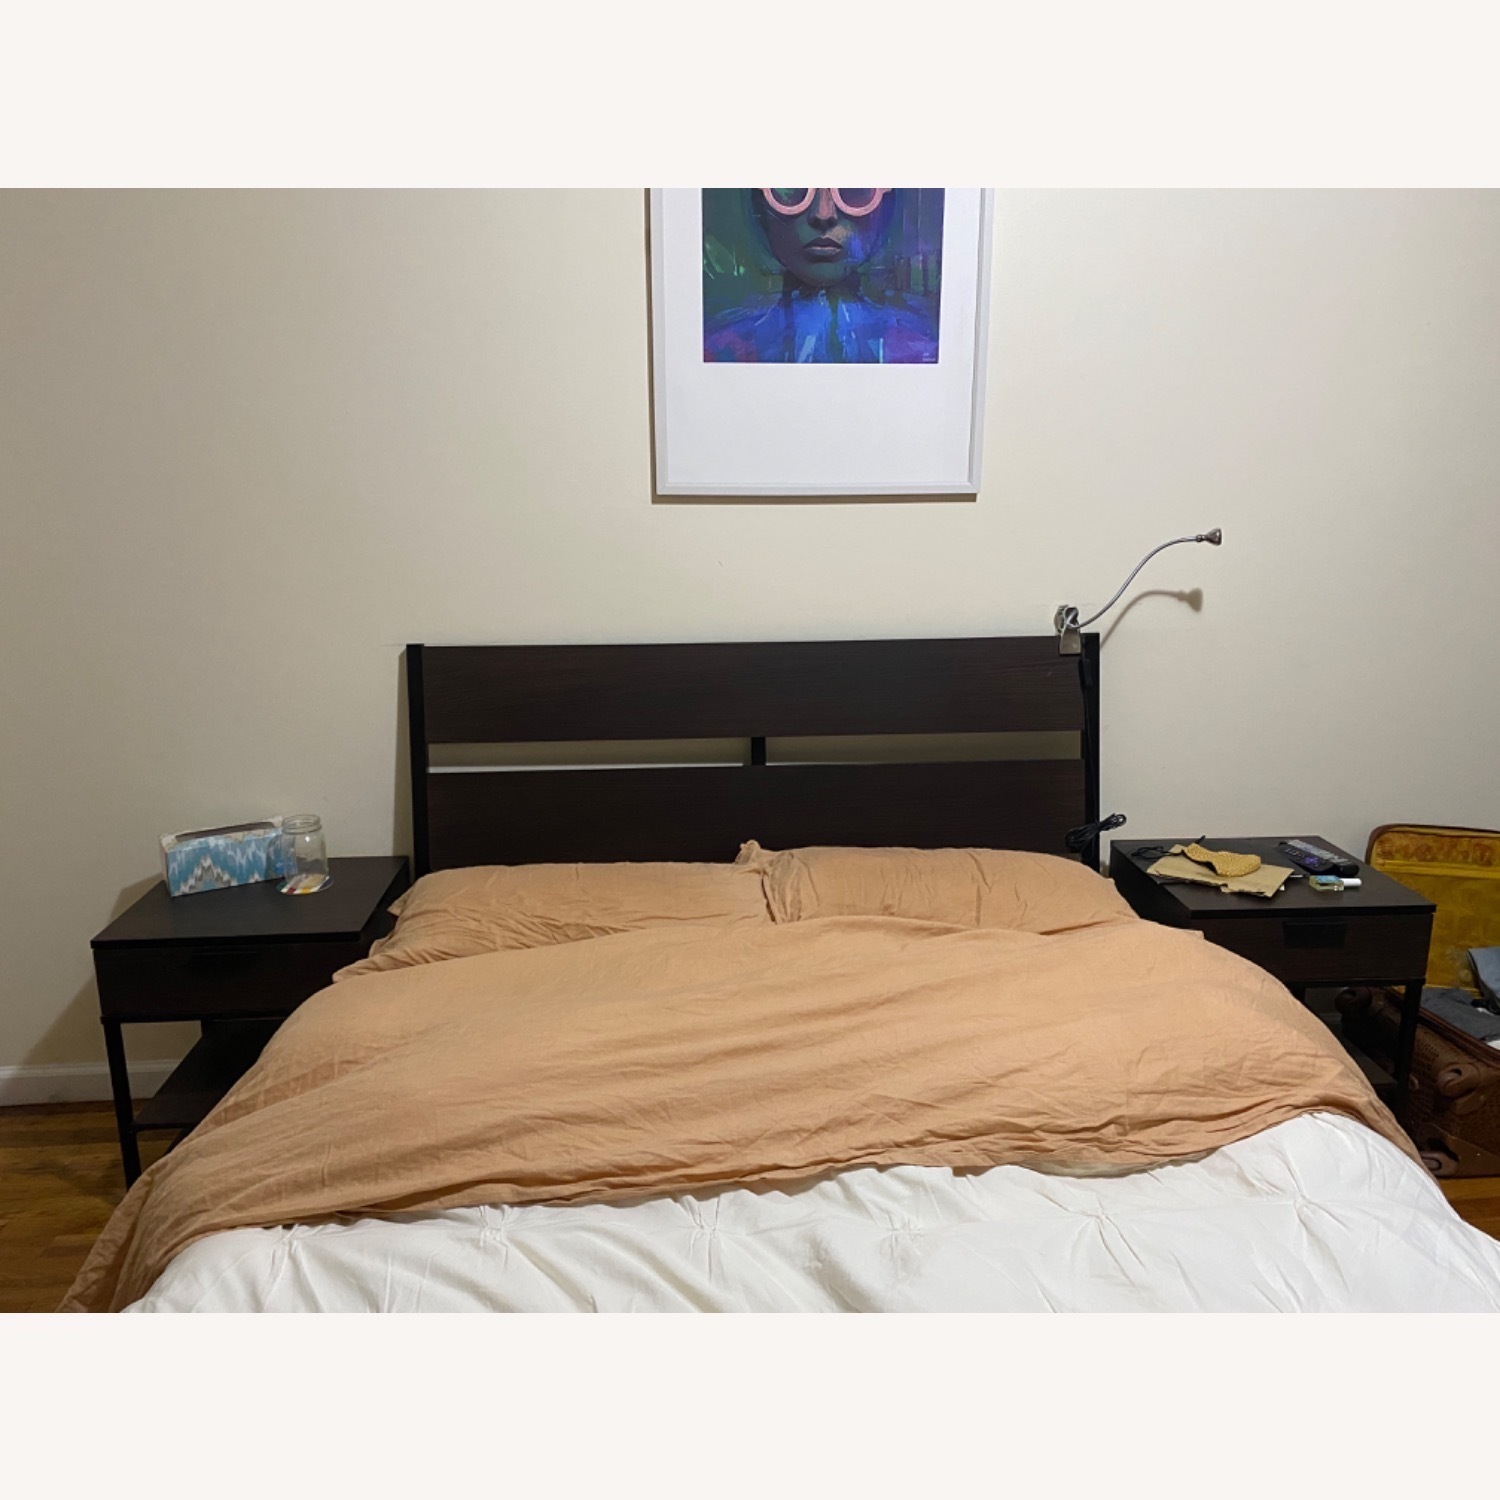 IKEA Trysil Full Size Bed with Light Stands - image-2